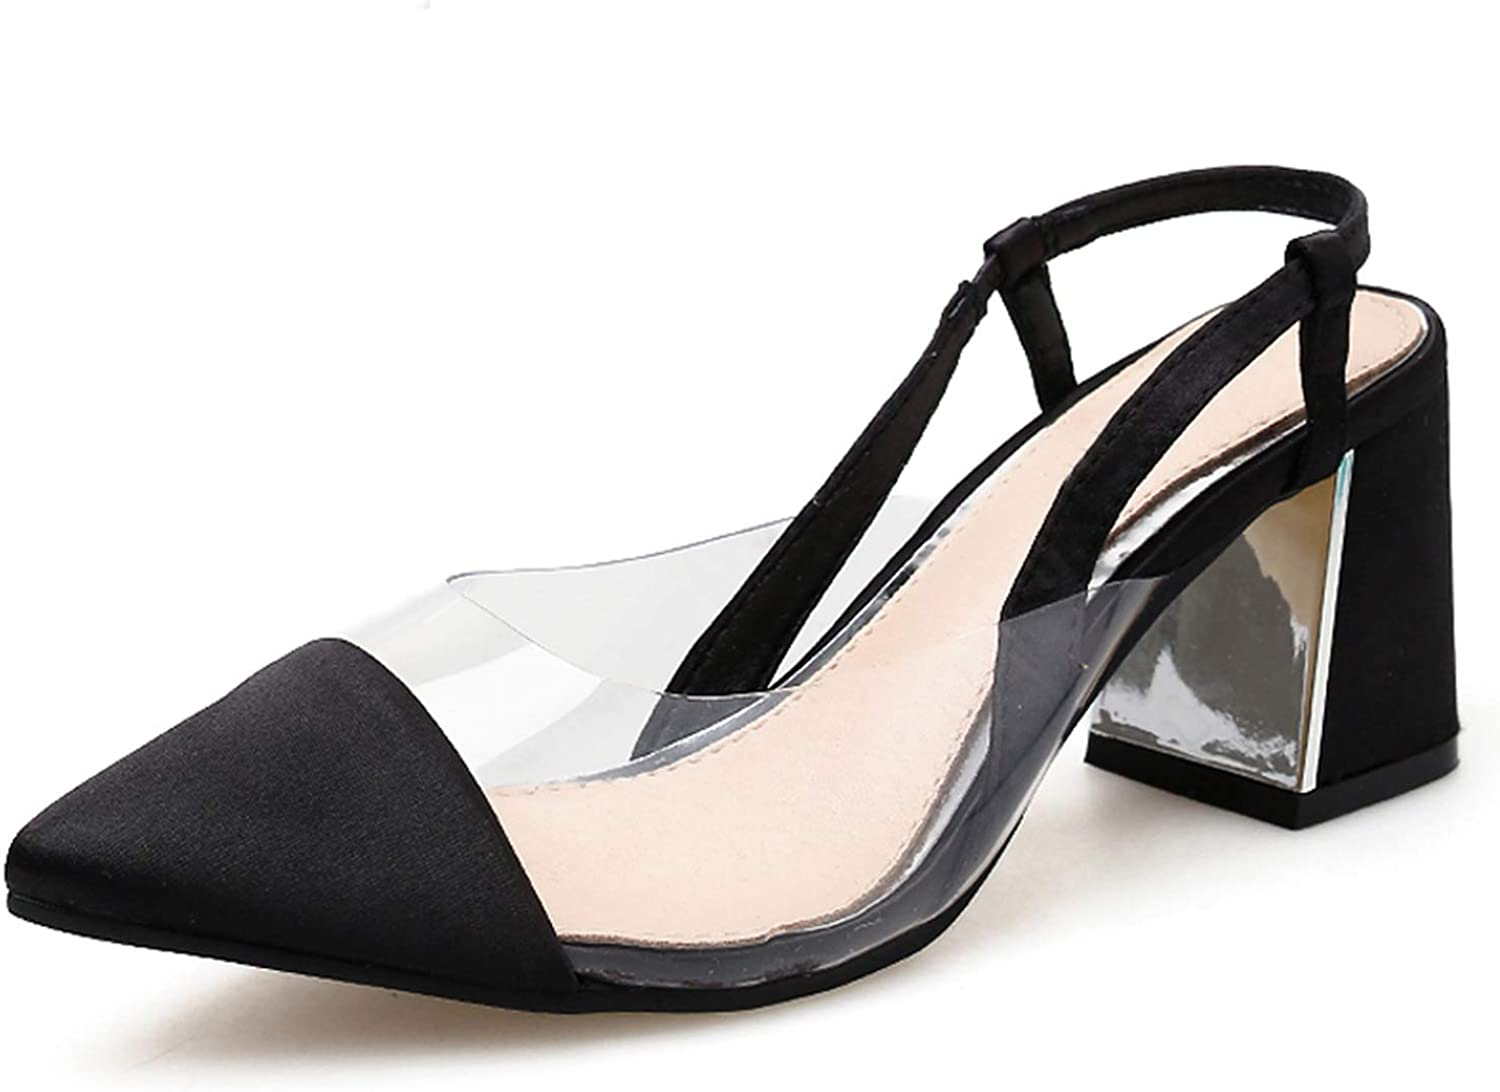 Transparent Sexy Pumps High HeelsWomen Shallow Square Heel Pumps Pointed Toe Lady shoes